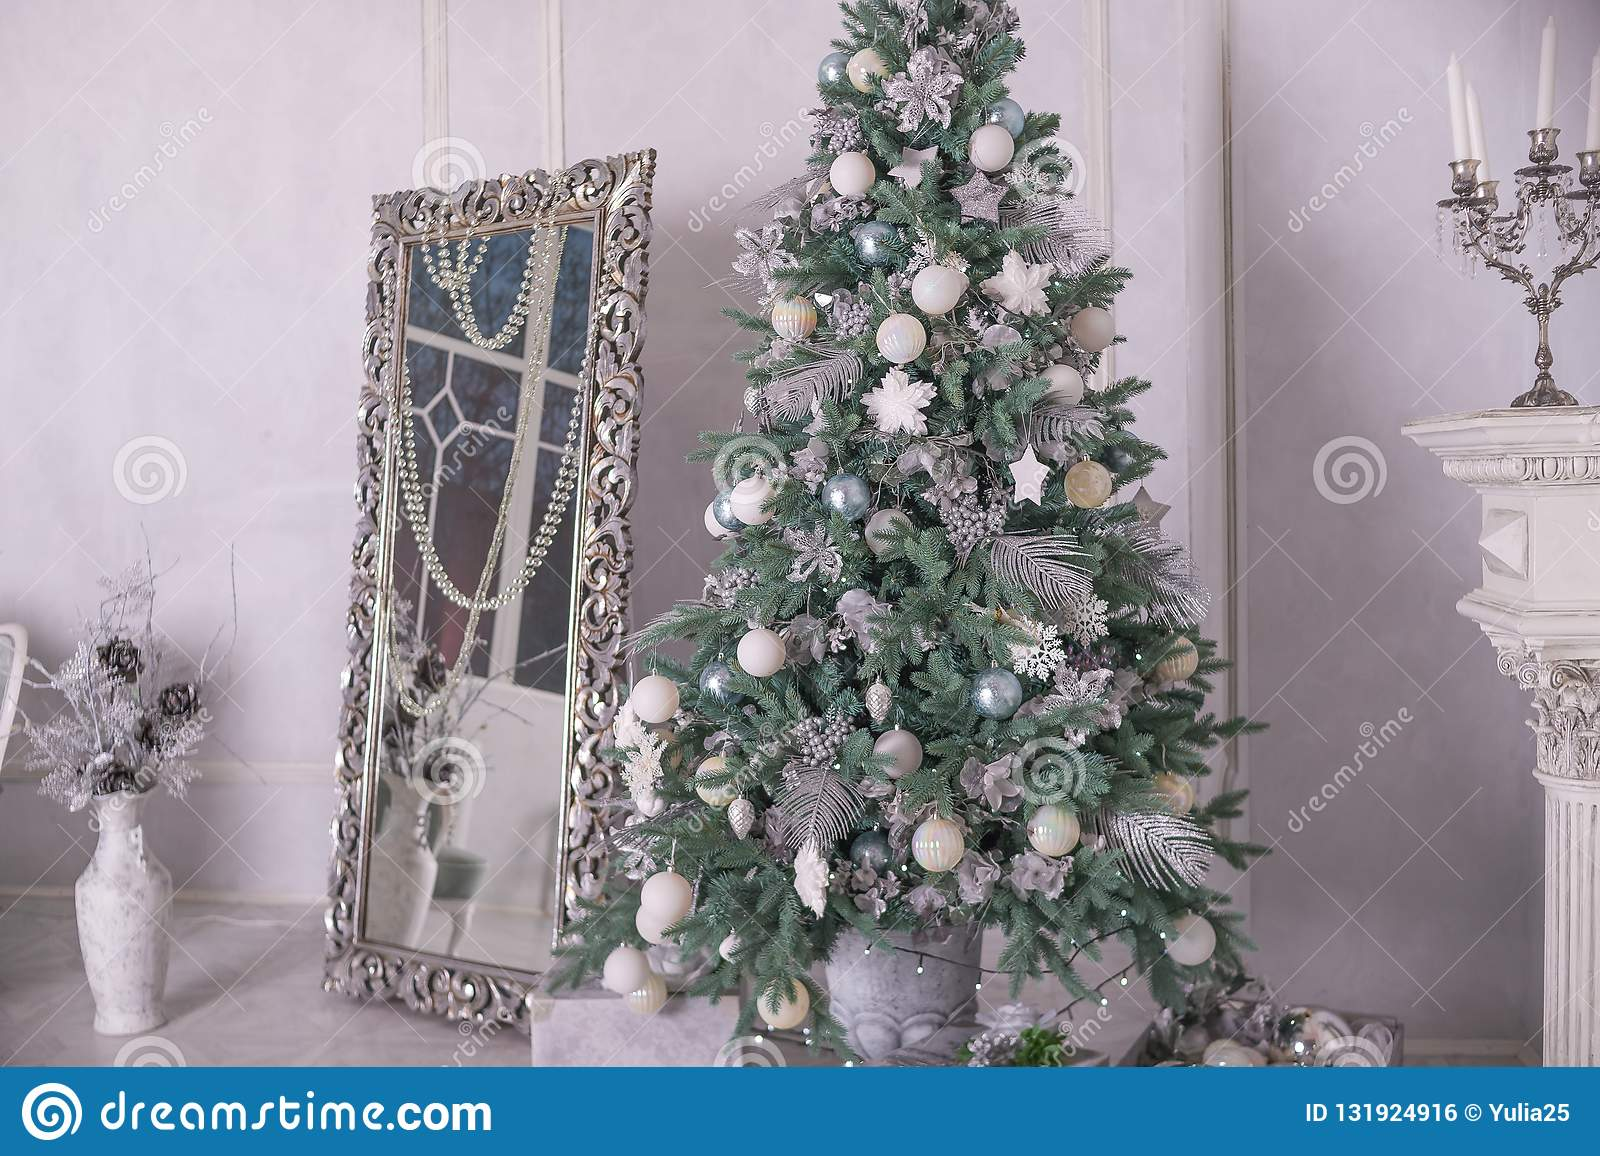 9 221 Silver Decorated Christmas Tree Photos Free Royalty Free Stock Photos From Dreamstime